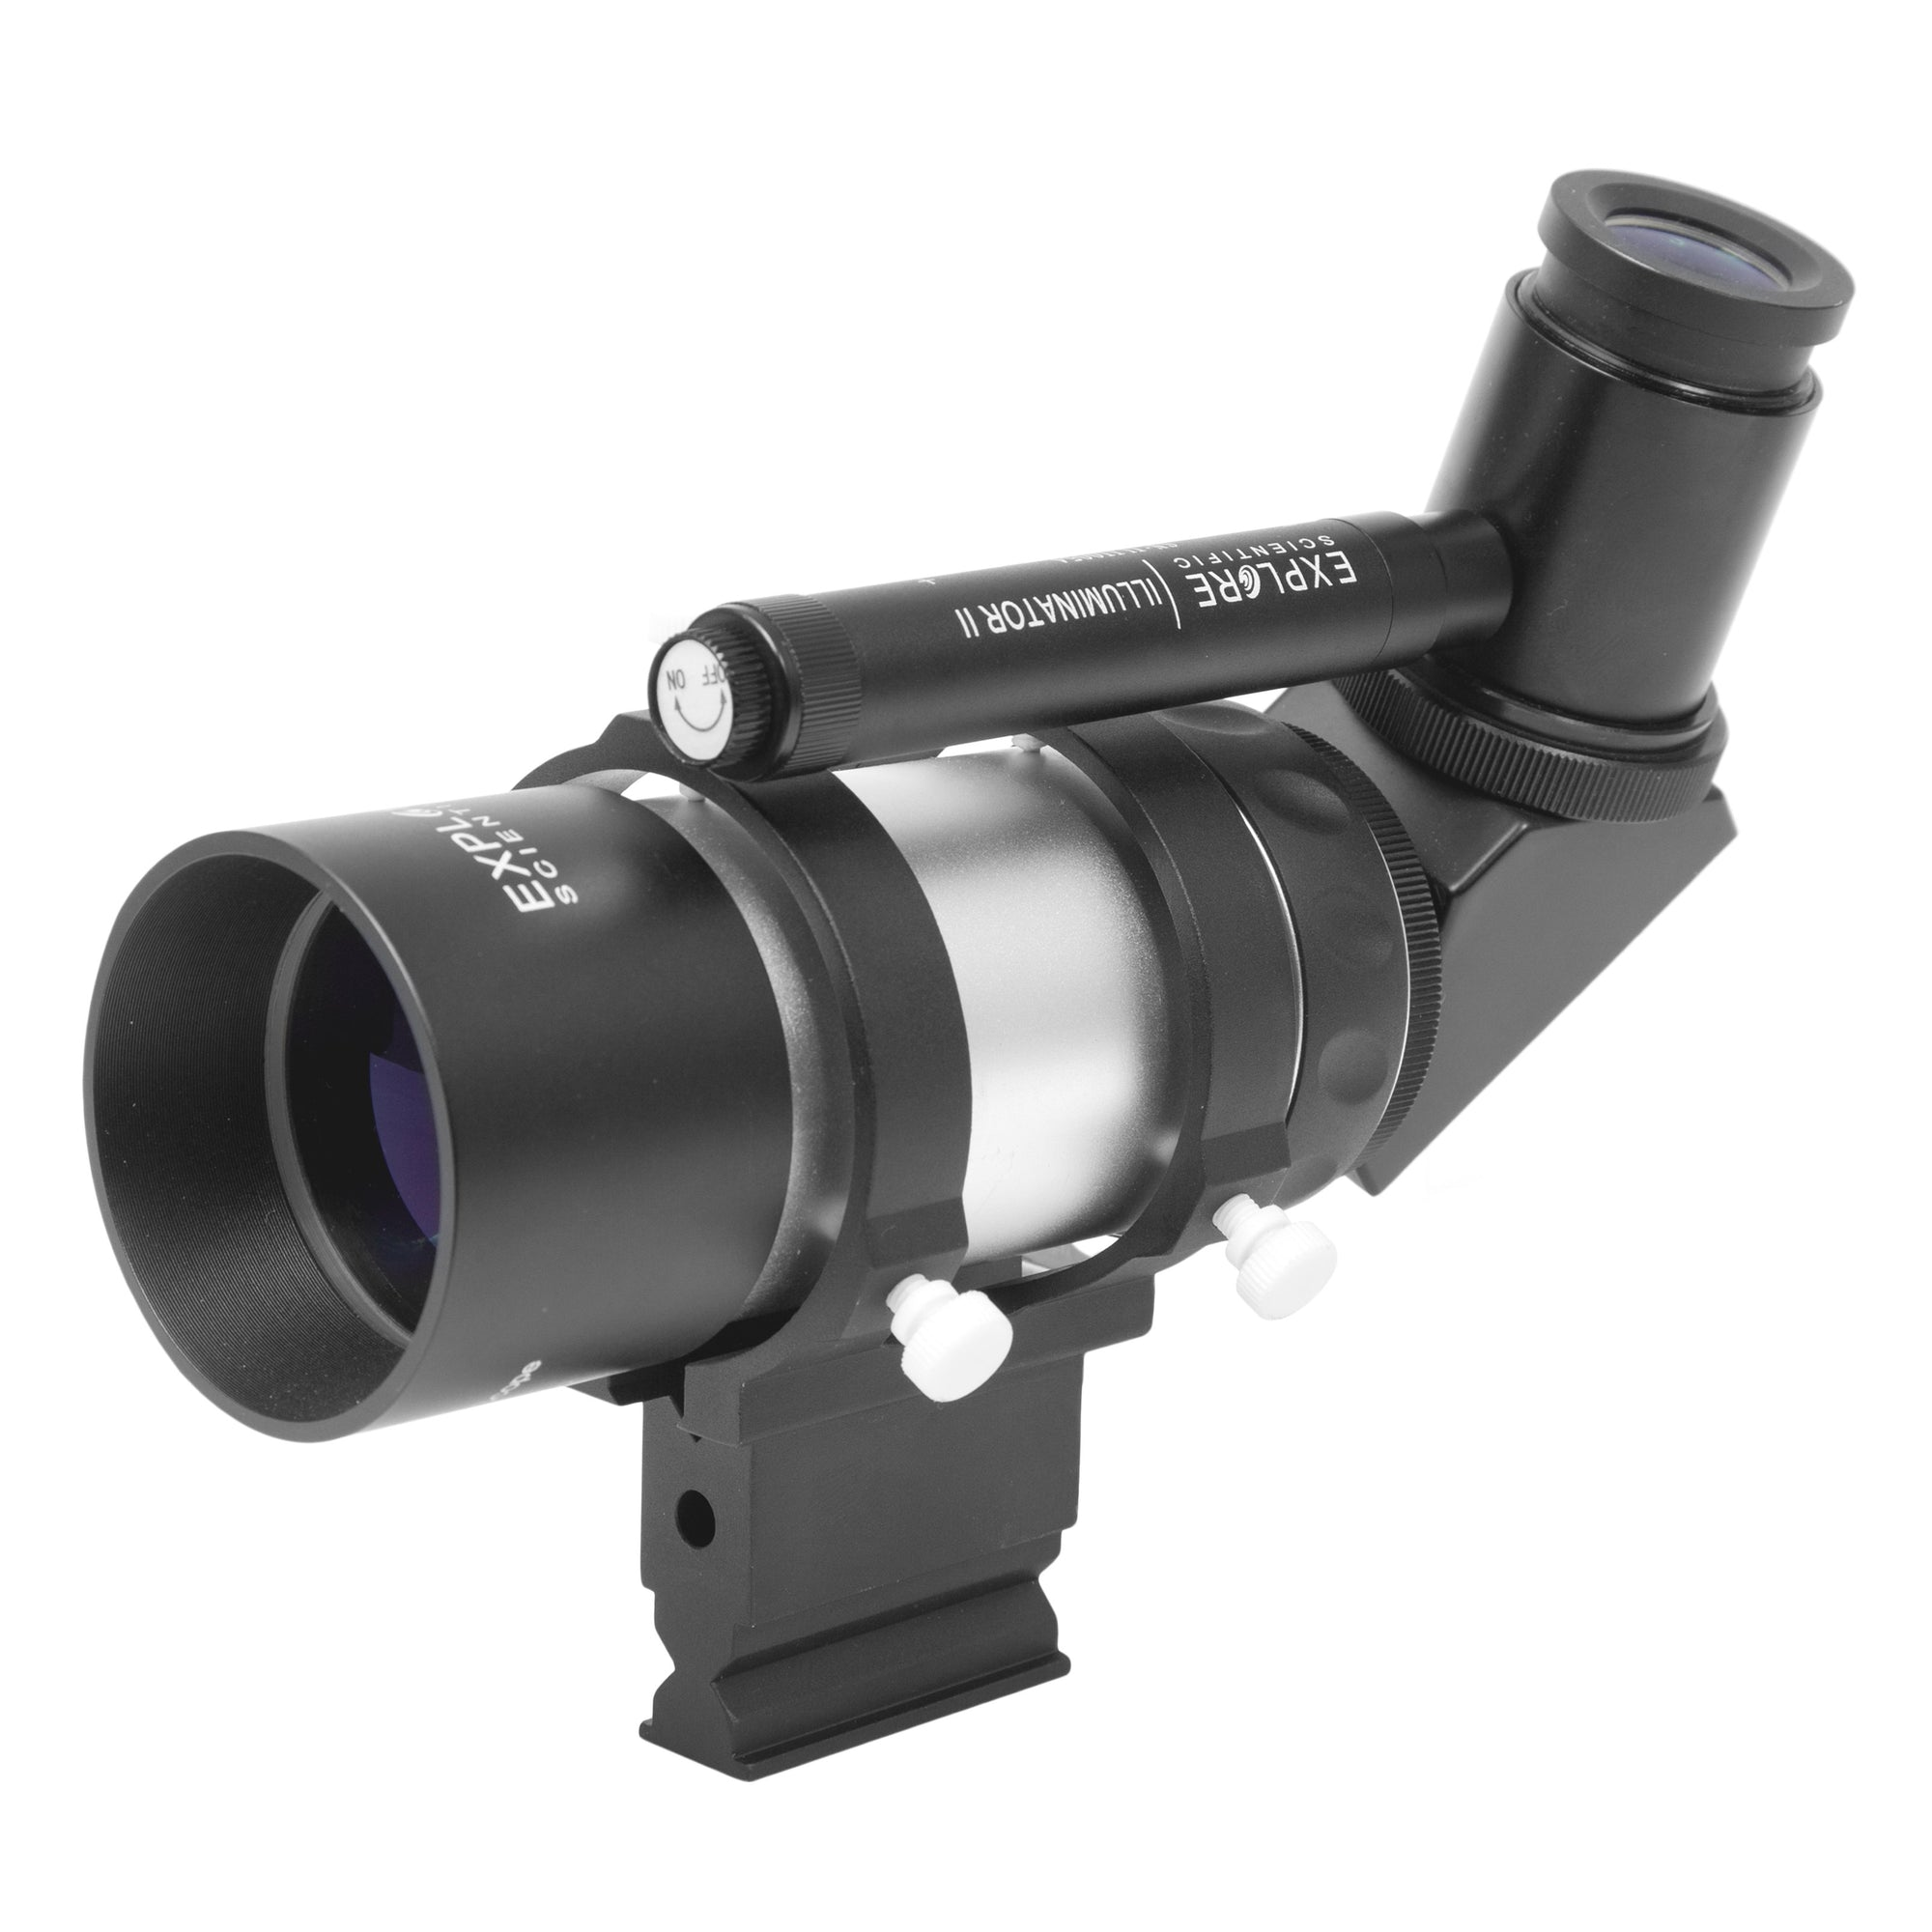 Explore Scientific 8x50mm Illuminated Polar Right Angle Finder Scope with NEW long battery life Illuminator II